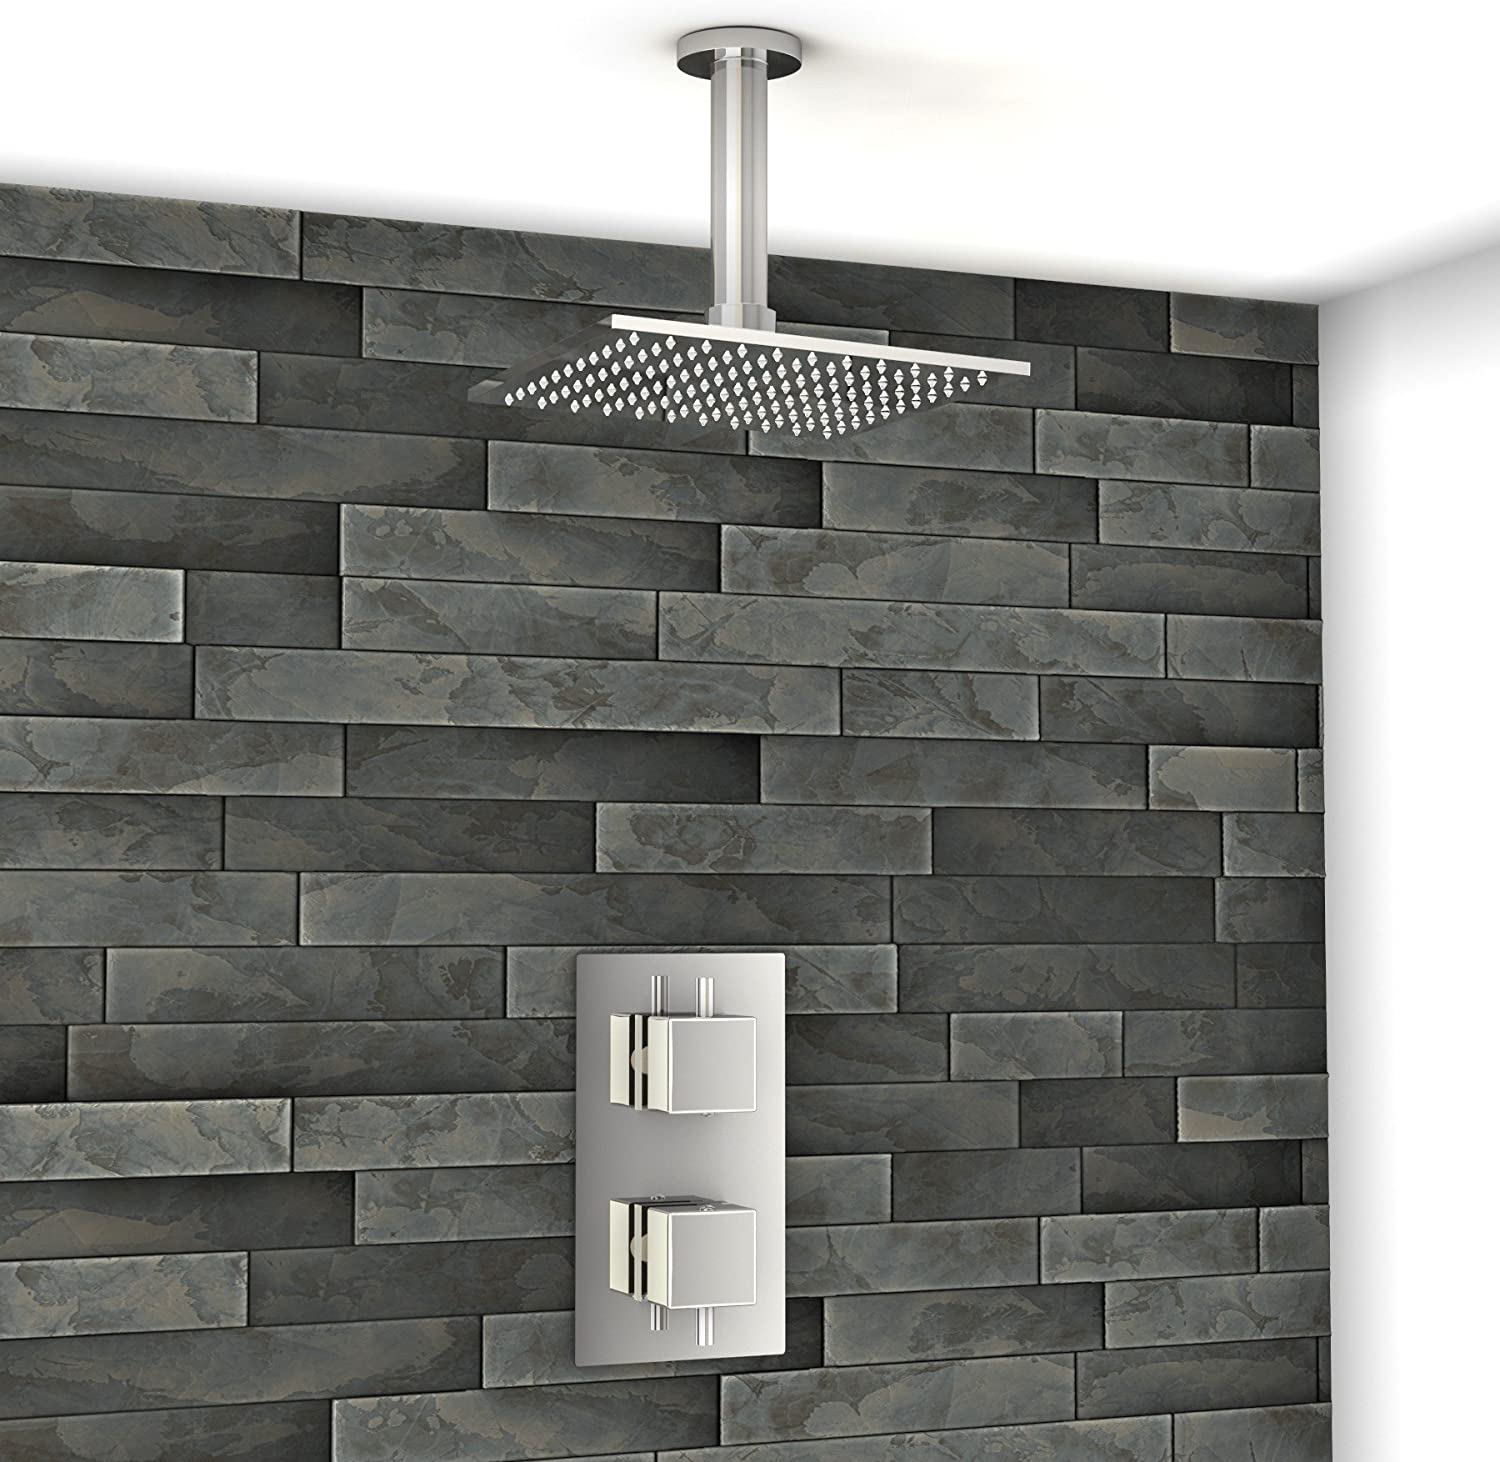 200mm Square Ceiling Shower Head Set with Concealed Twin Thermostatic Shower Valve